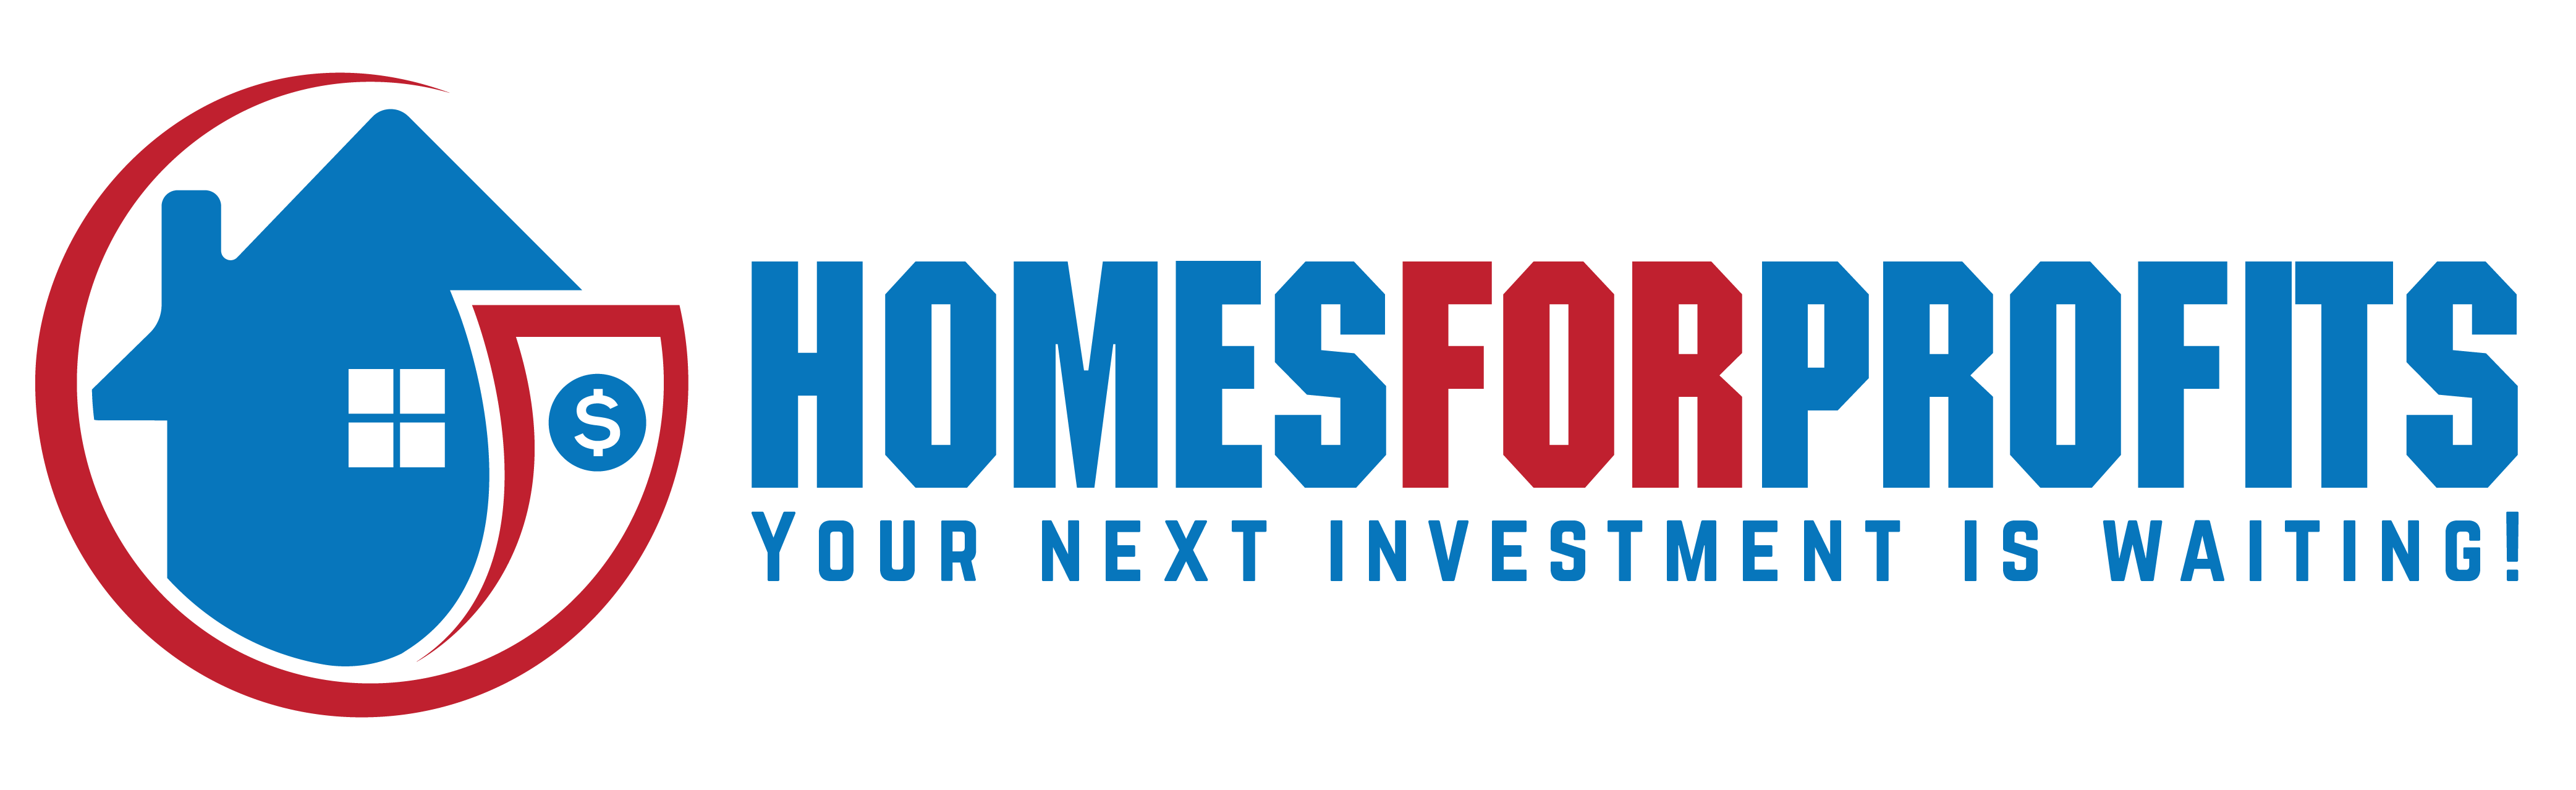 Homes For Profits logo